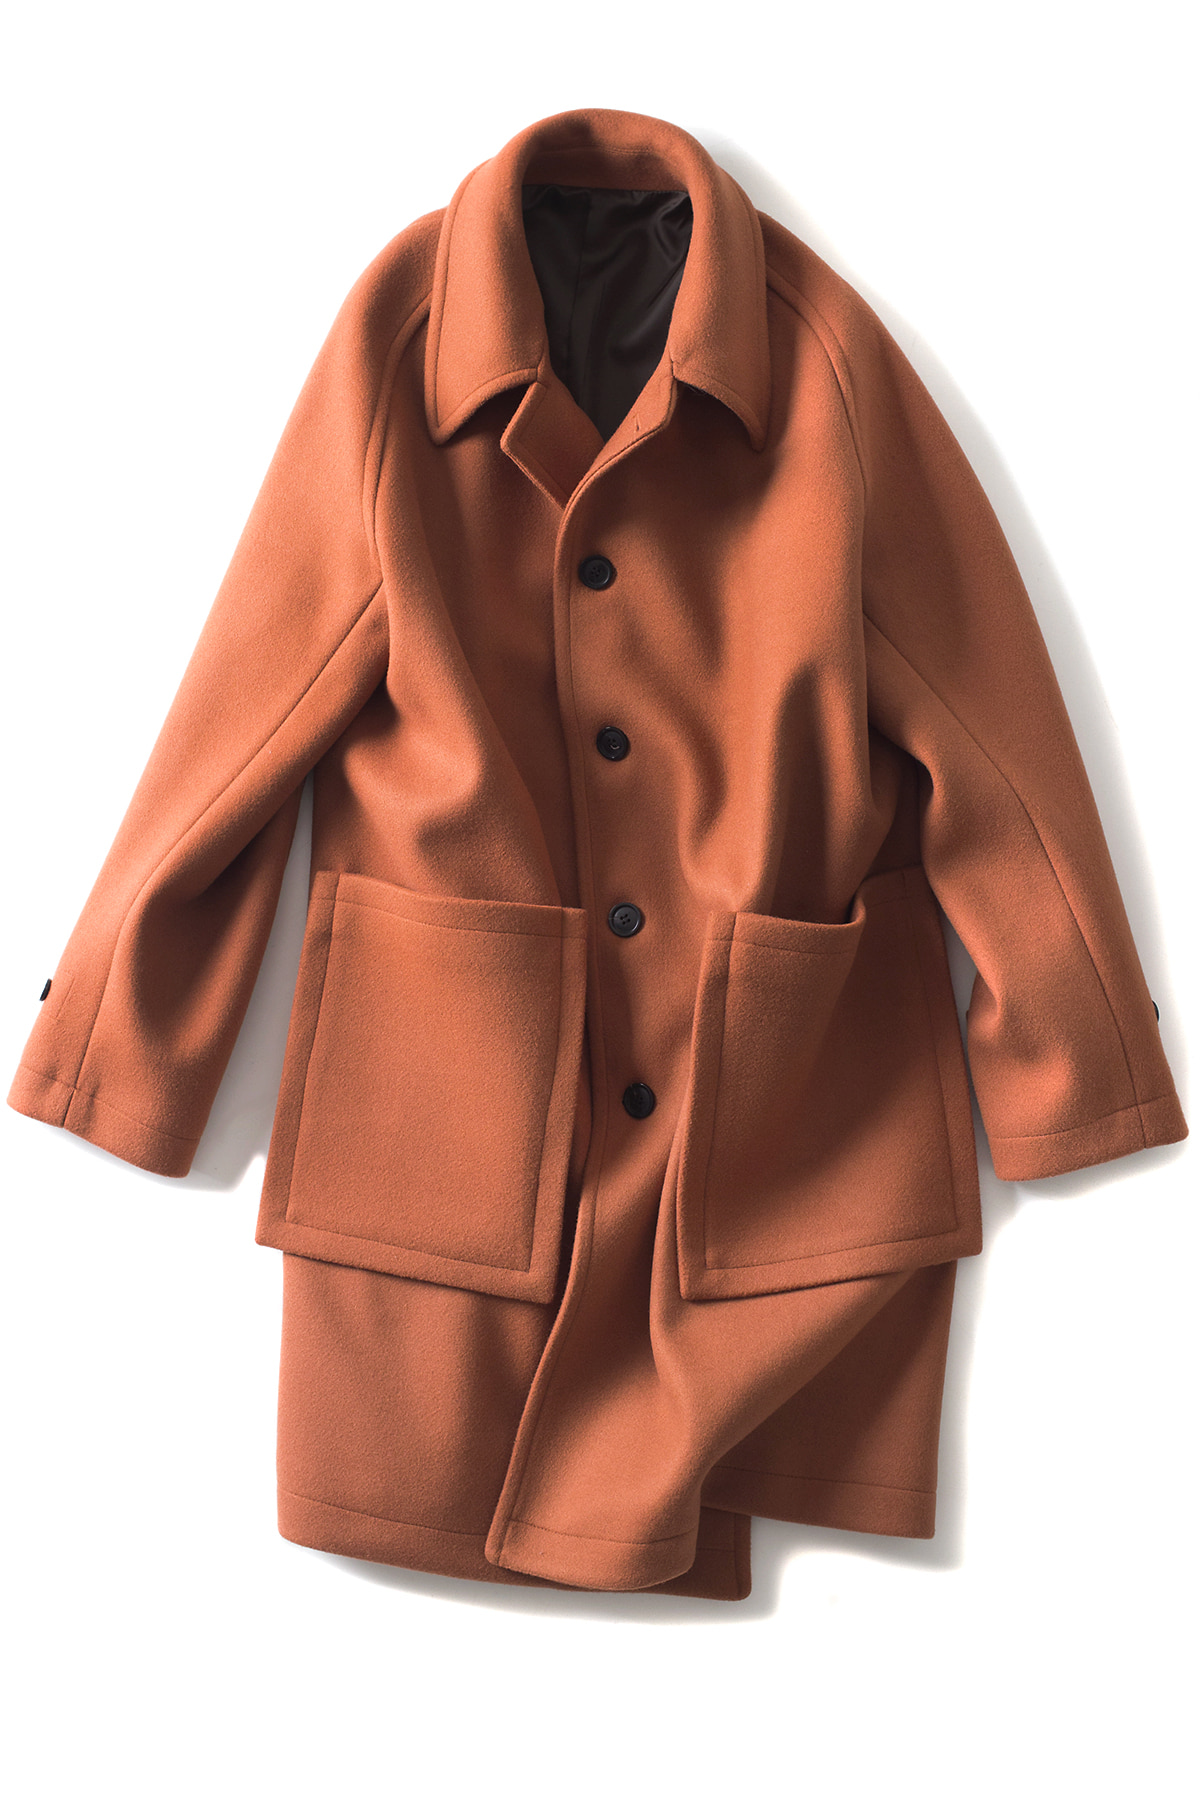 BIRTHDAYSUIT : Leck Coat (Orange)